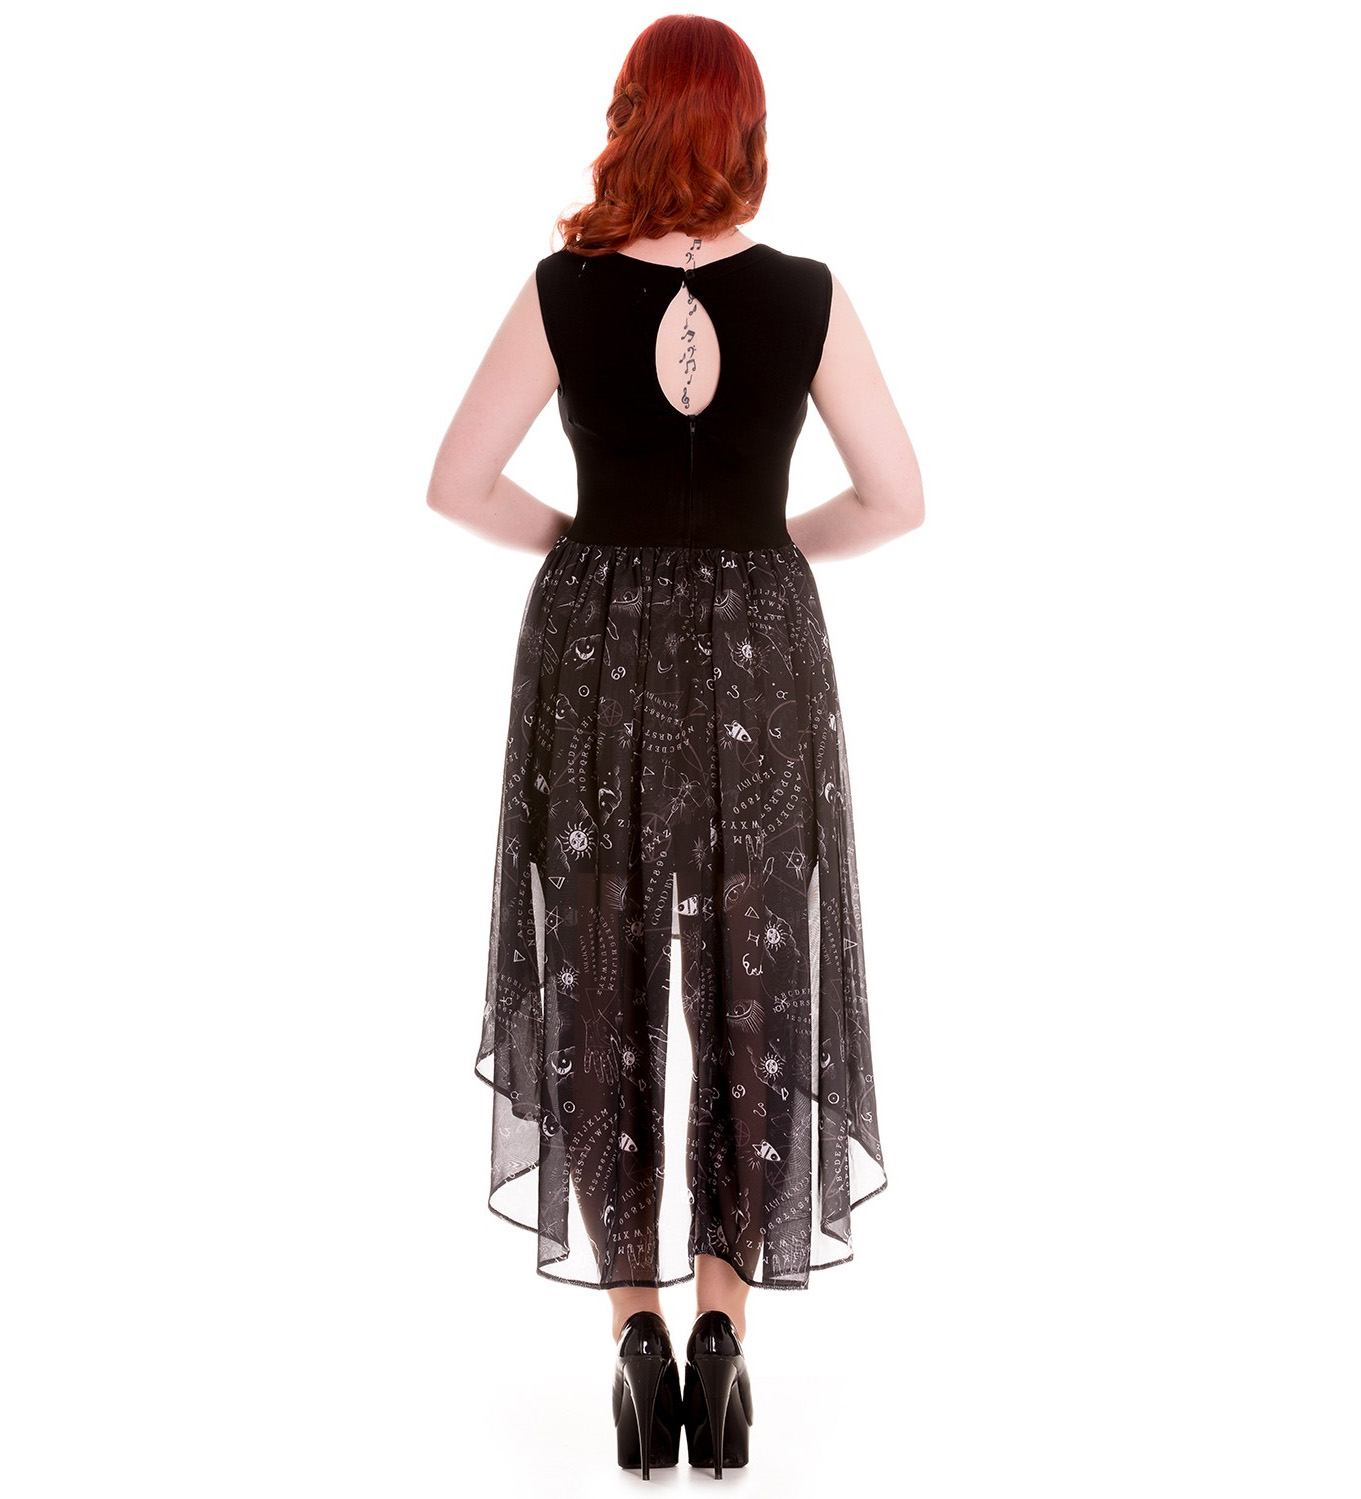 HELL-BUNNY-Spin-Doctor-Goth-Black-Witch-Ouija-SPIRIT-Dress-All-Sizes thumbnail 13